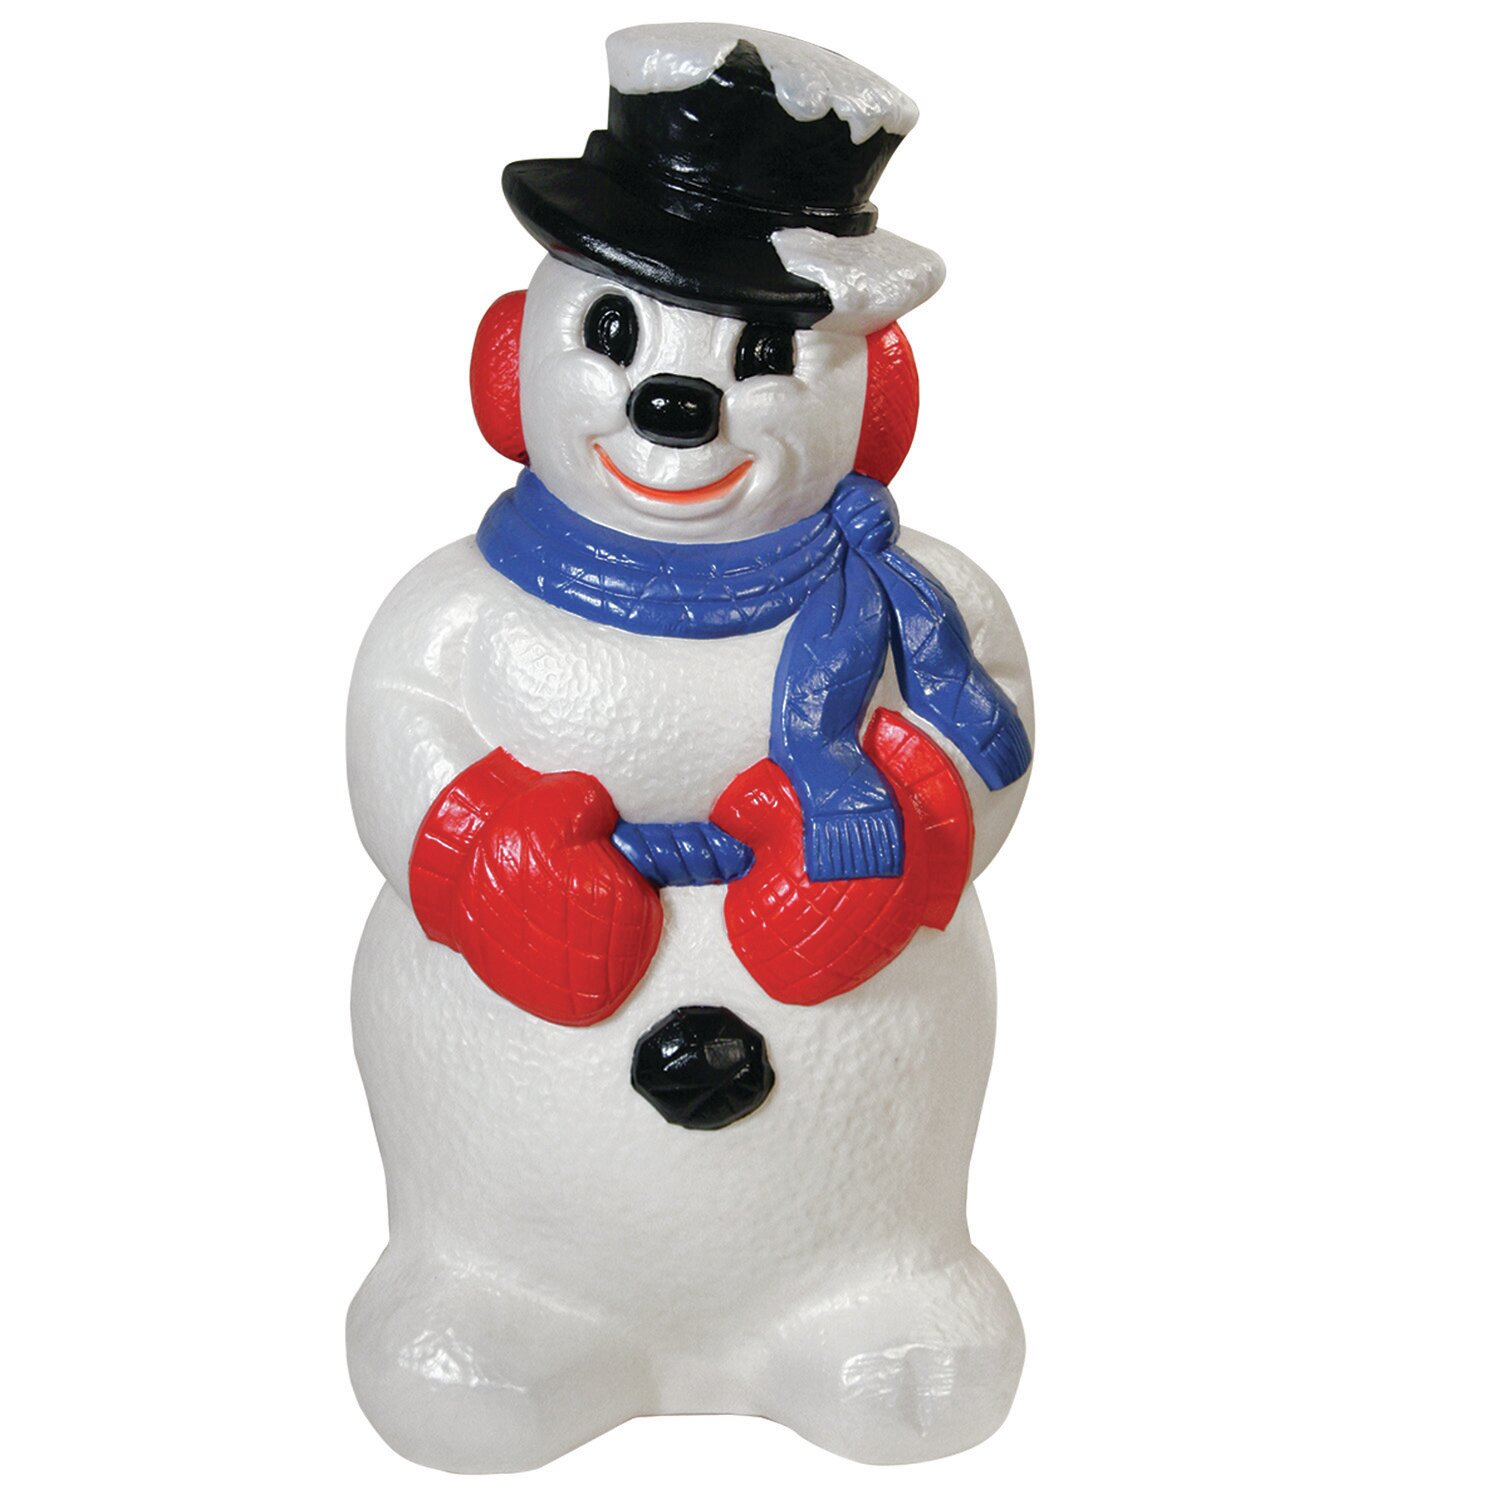 General Foam Plastics Derby Snowman Figurine Amp Reviews